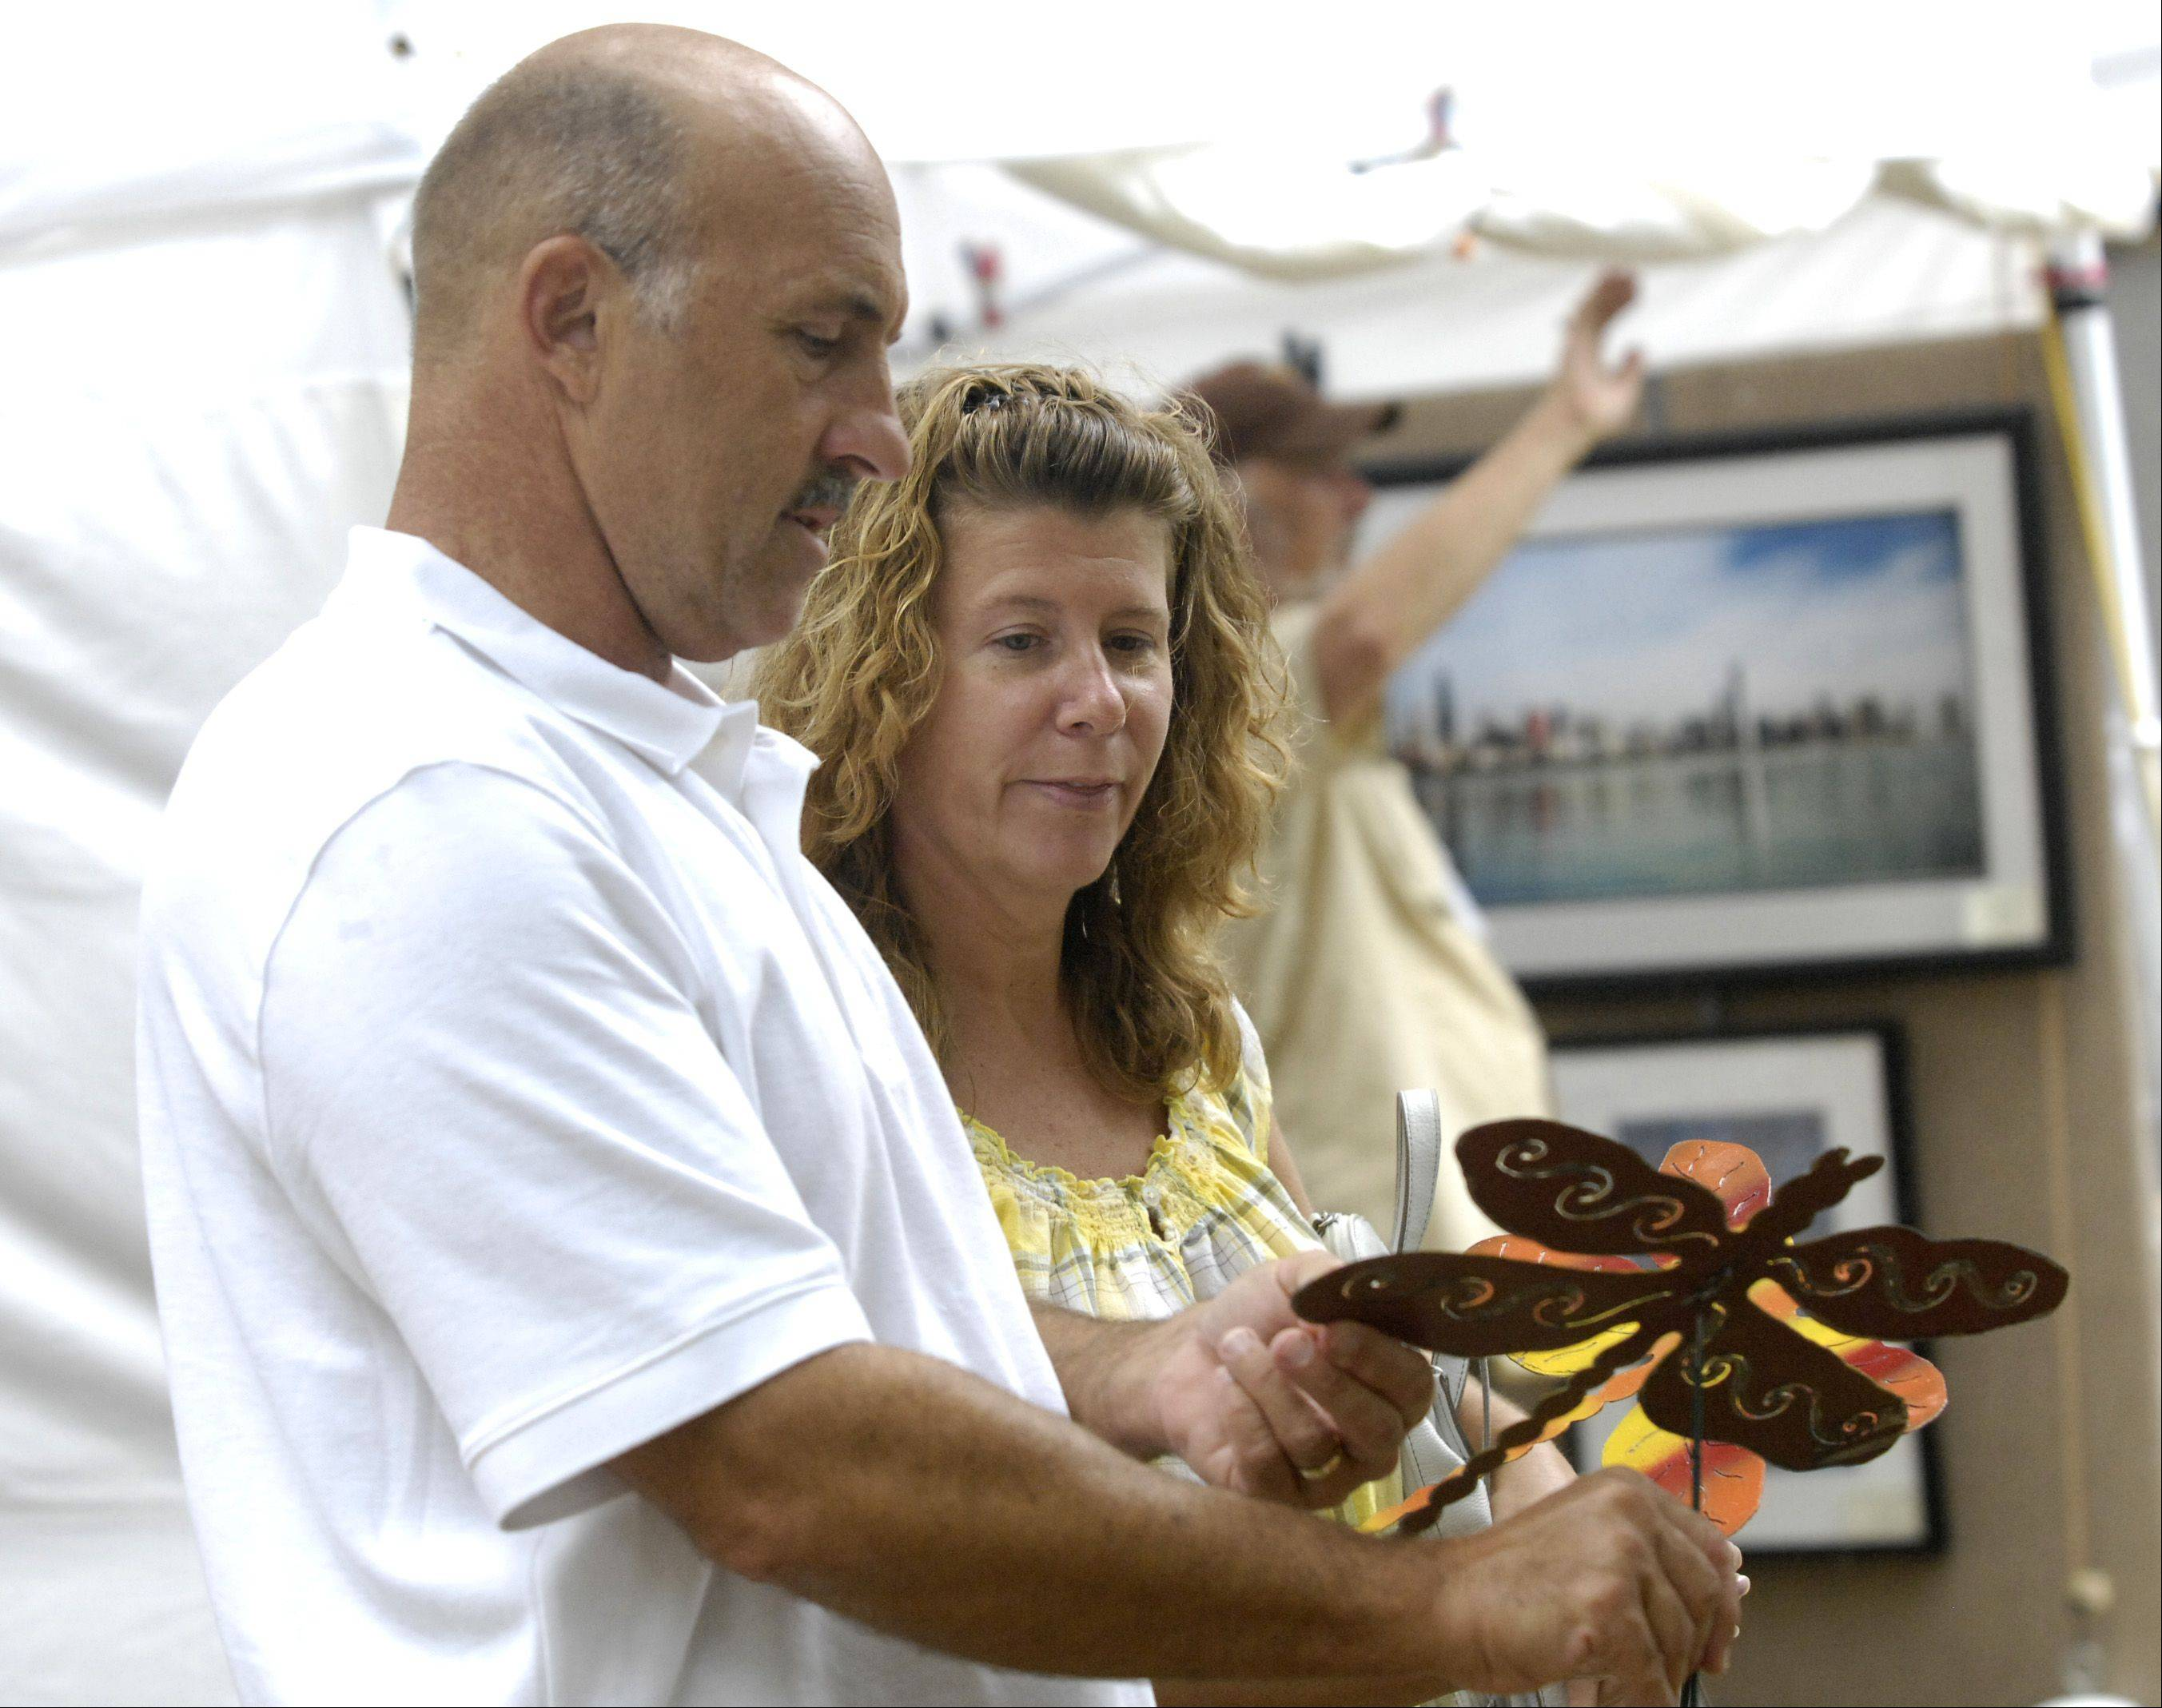 John and Maria Shalamk of Glen Ellyn choose two metal yard butterflies by artist Kotah Moon during the Glen Ellyn Festival of the Arts at Lake Ellyn Park Sunday.